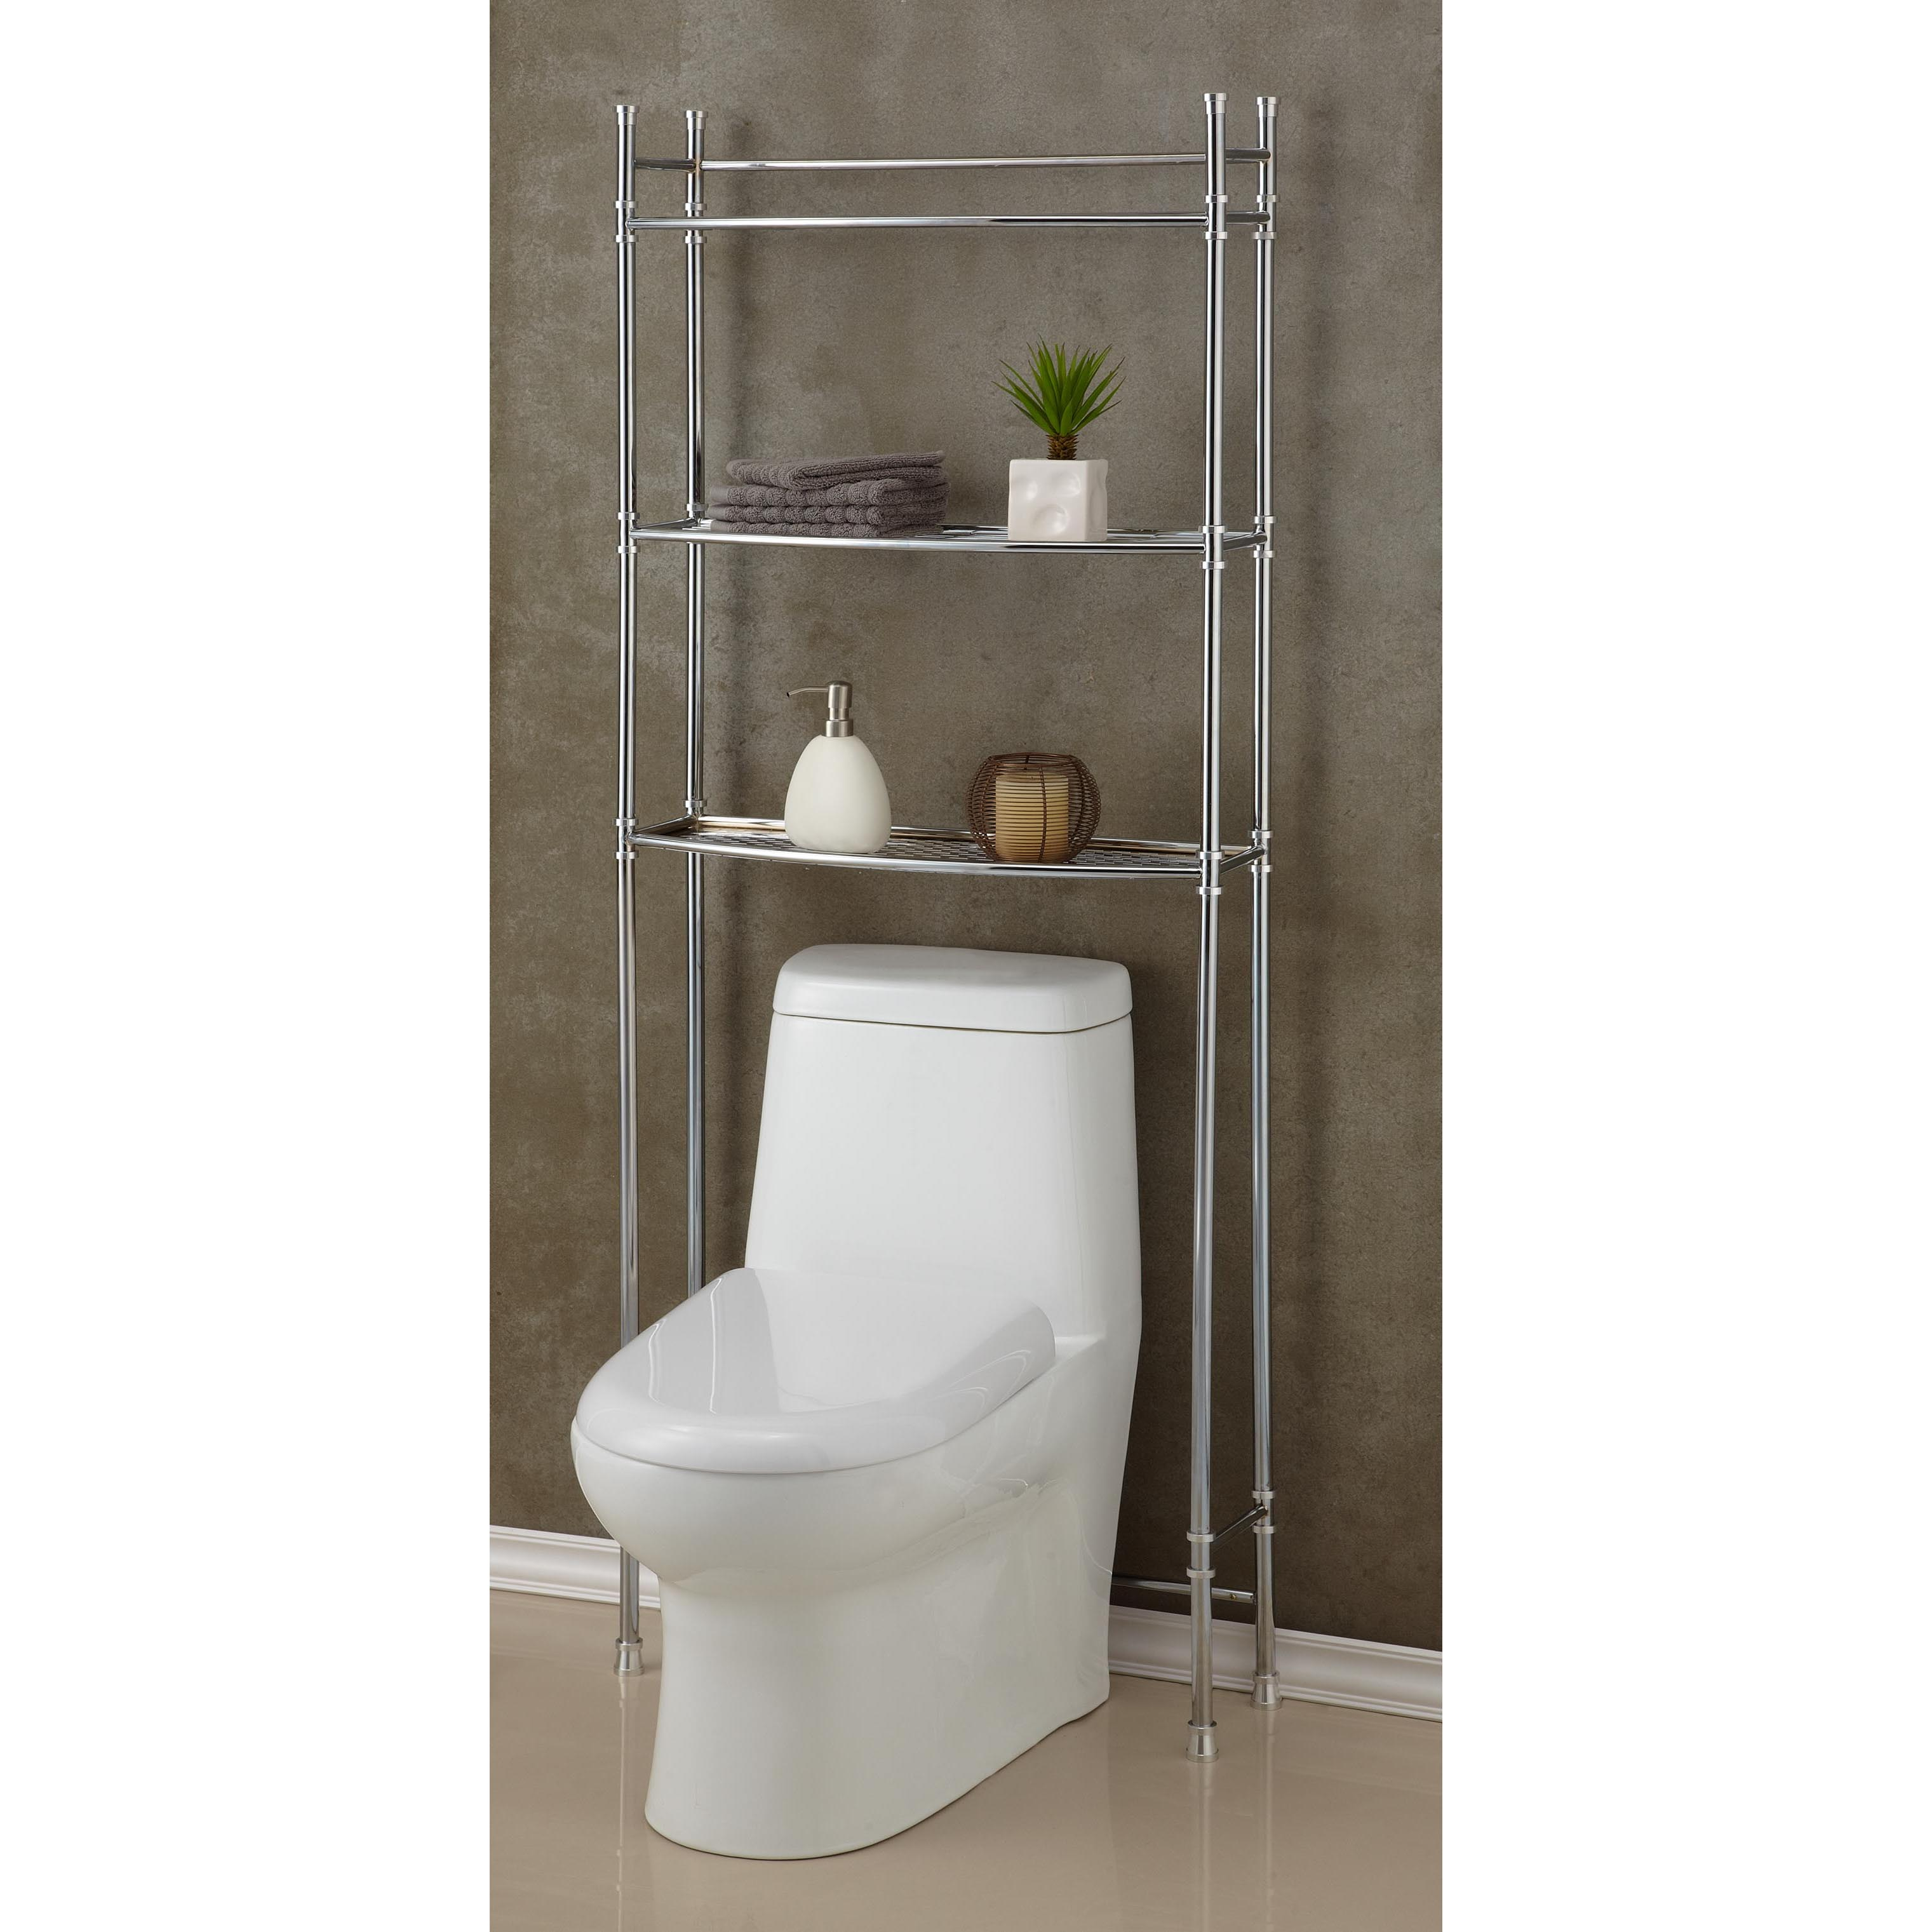 Shop Chrome Bathroom Shelf Space Saver - Silver - Free Shipping ...